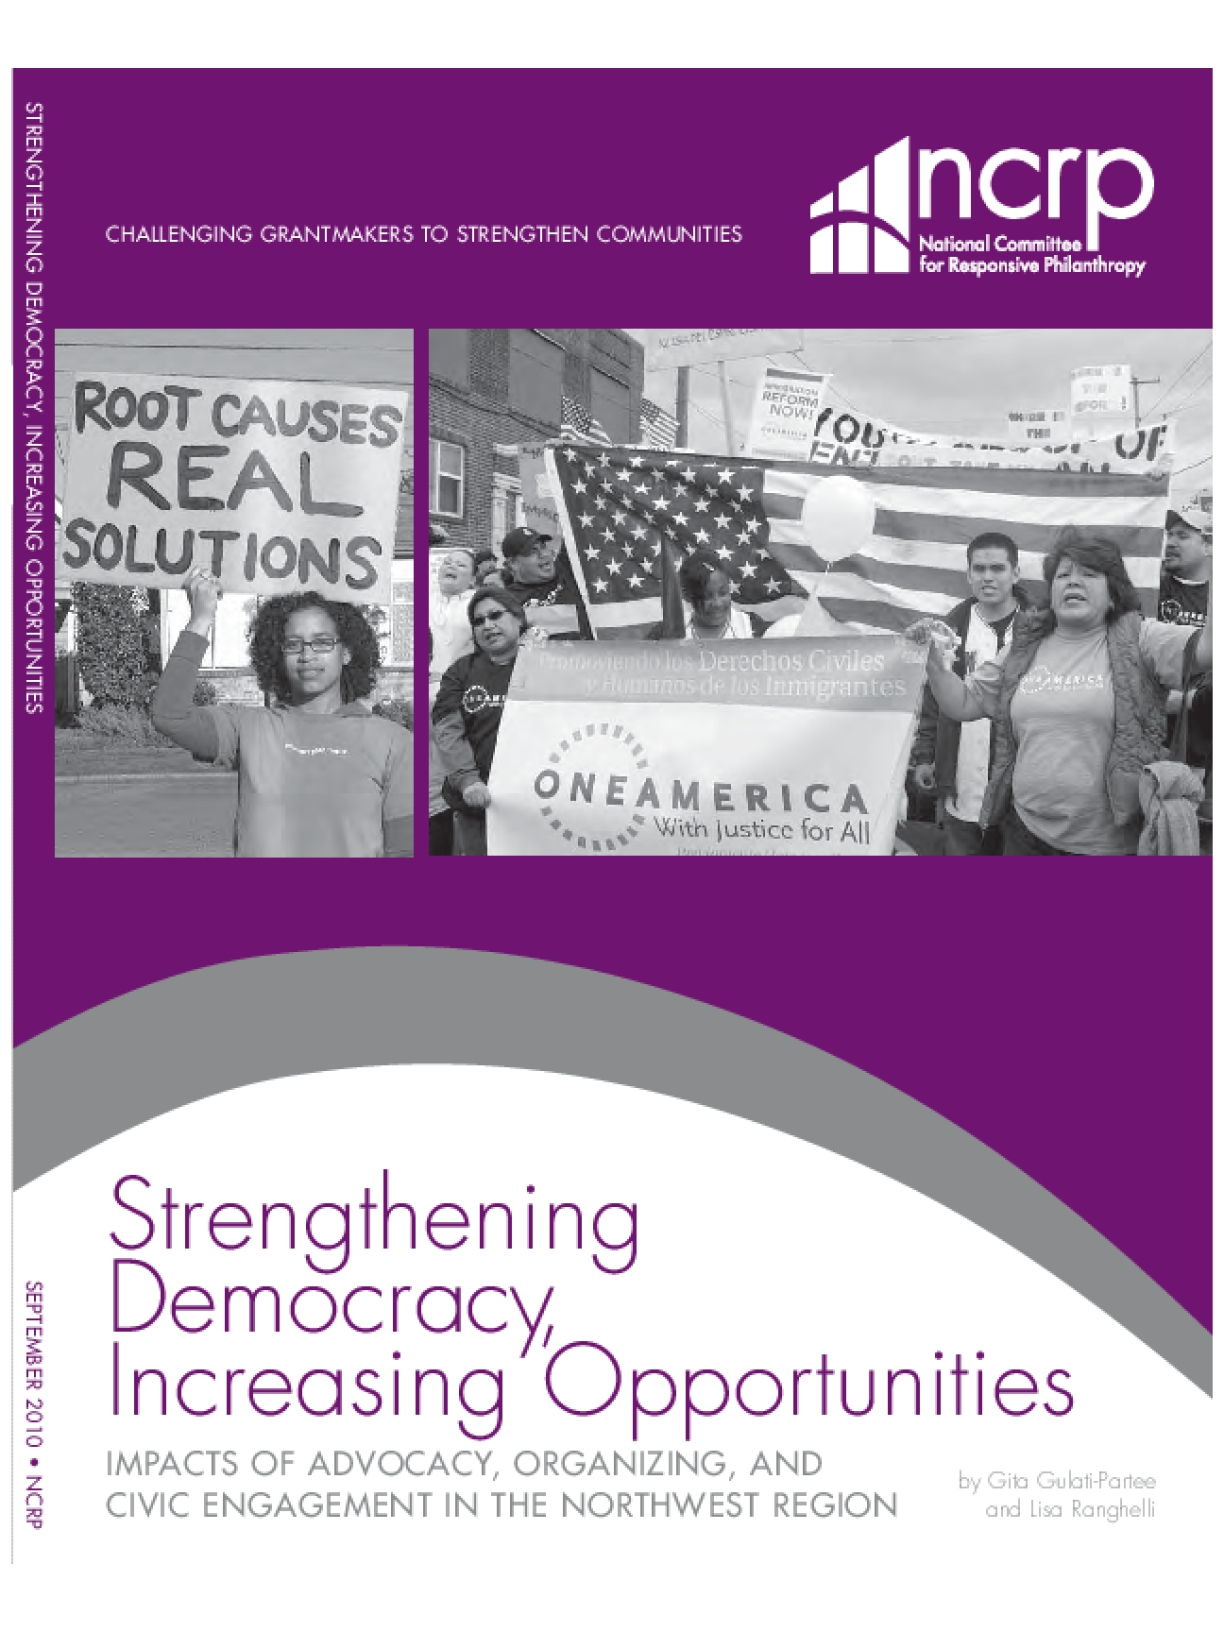 Strengthening Democracy, Increasing Opportunities: Impacts of Advocacy, Organizing, and Civic Engagement in the Northwest Region